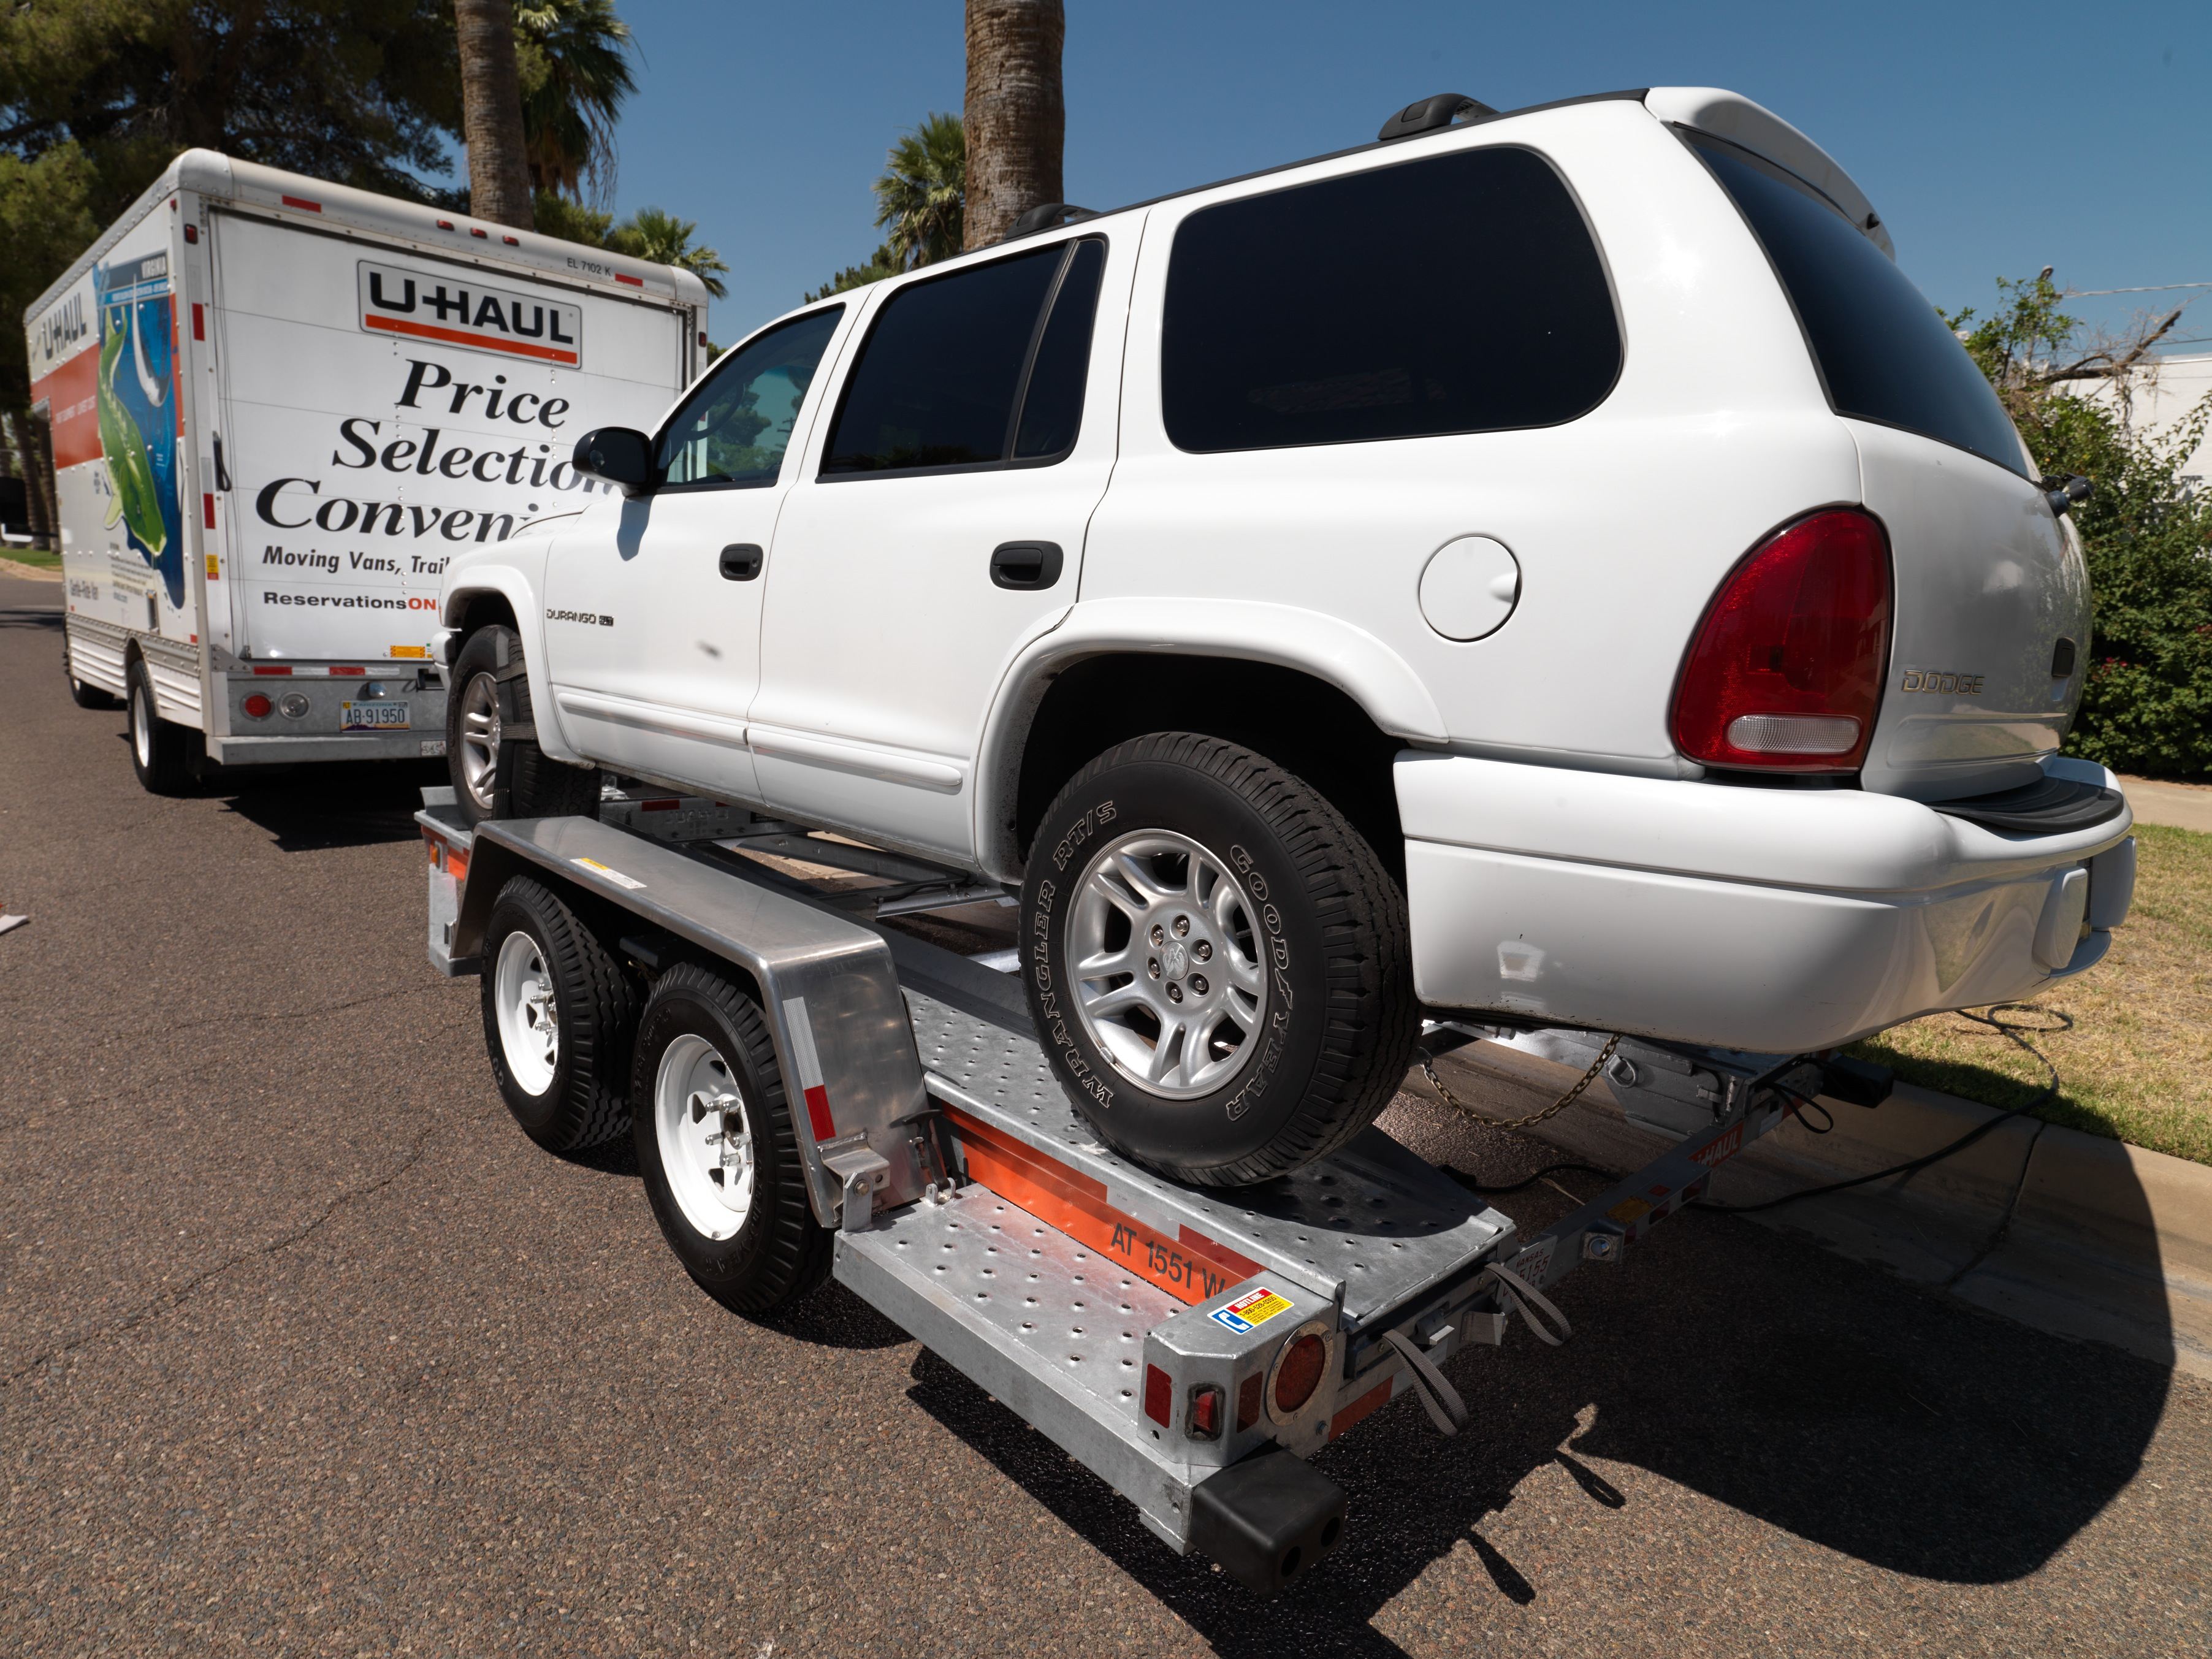 U-Haul: About: U-Haul Auto Transport The Best Way To Get